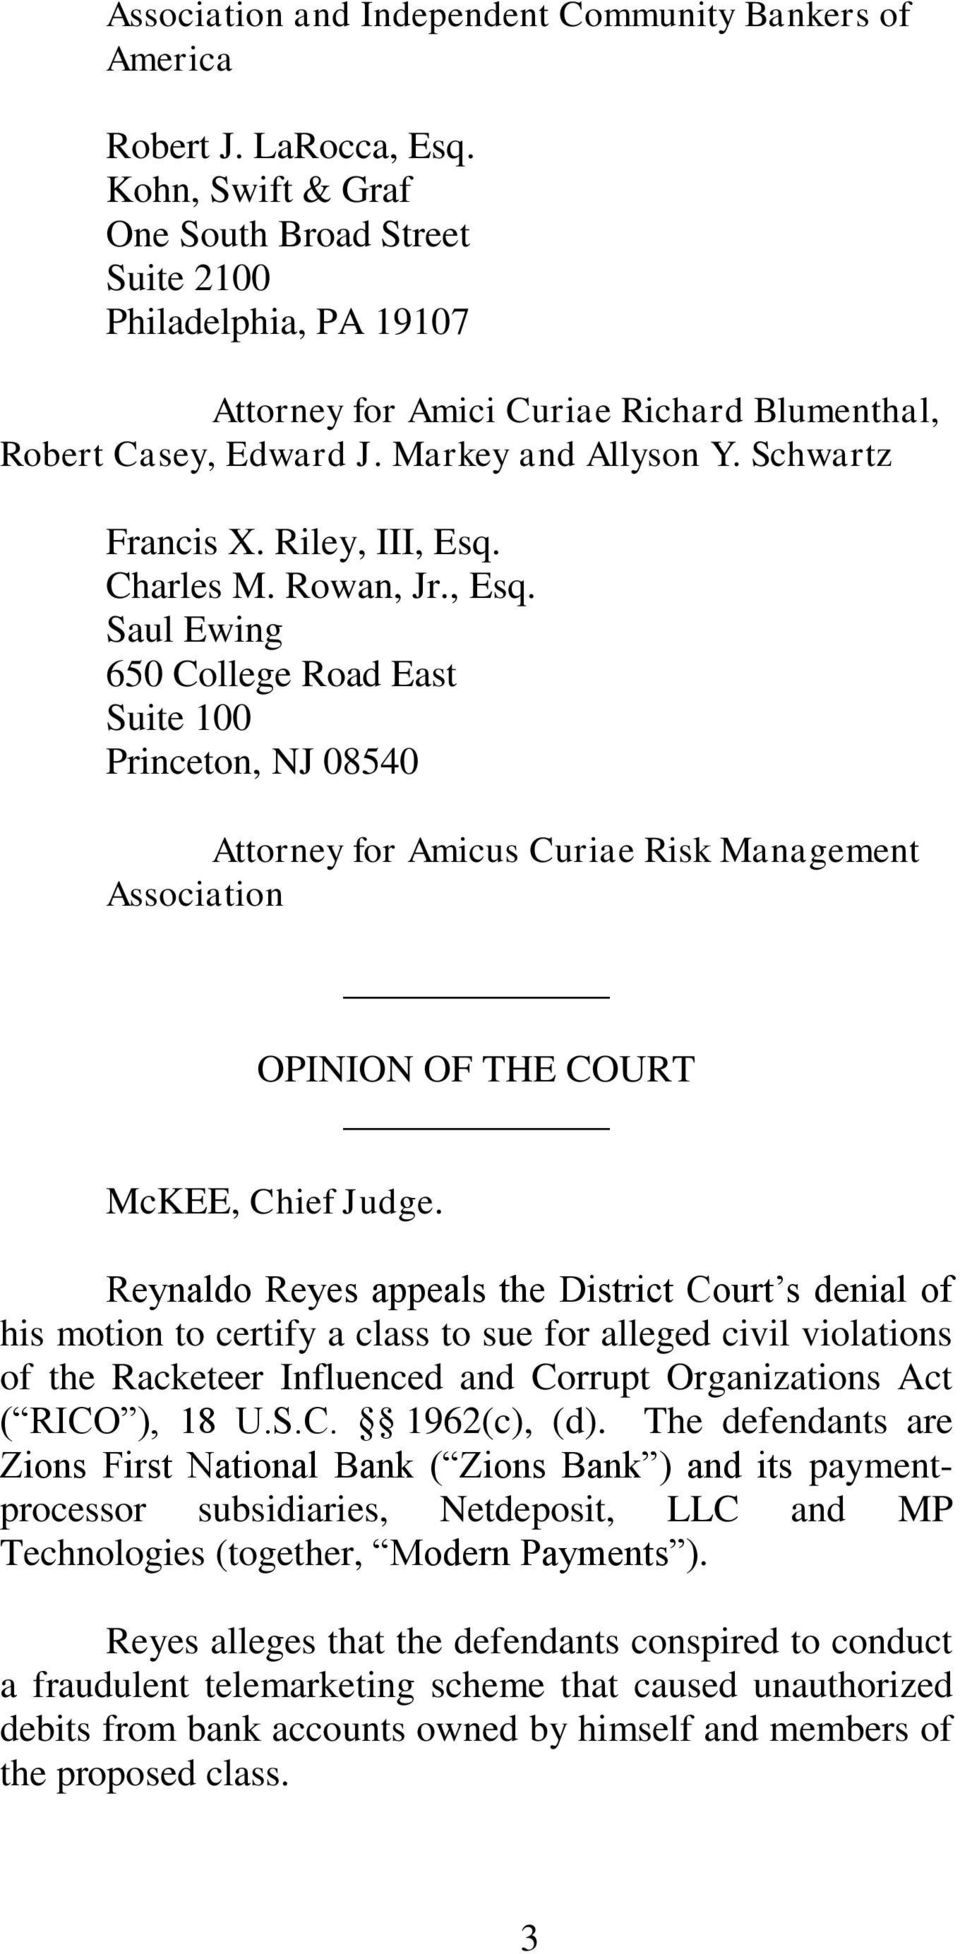 Riley, III, Esq. Charles M. Rowan, Jr., Esq. Saul Ewing 650 College Road East Suite 100 Princeton, NJ 08540 Attorney for Amicus Curiae Risk Management Association OPINION OF THE COURT McKEE, Chief Judge.